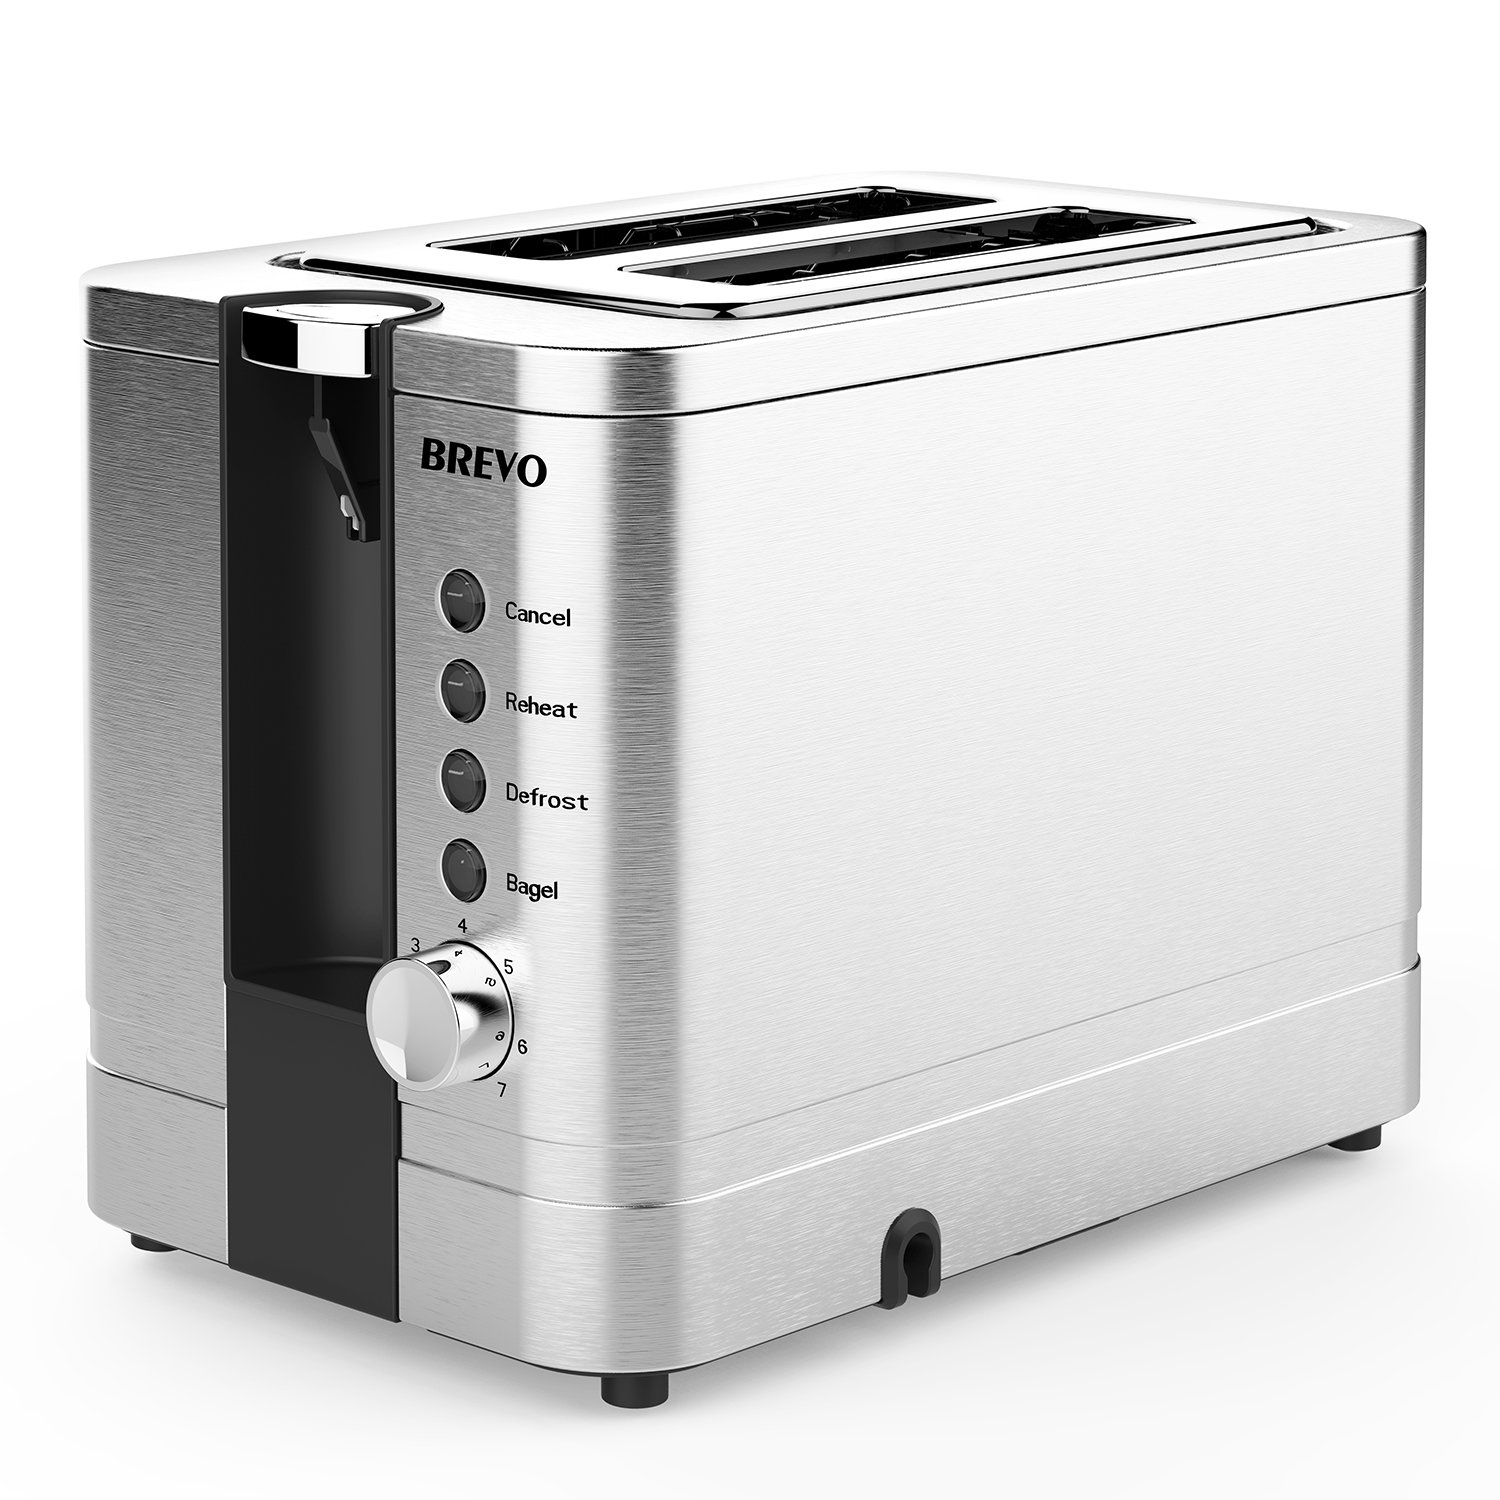 top 10 best compact 2 slice toasters reviews 2018 2019 on flipboard by kinida. Black Bedroom Furniture Sets. Home Design Ideas